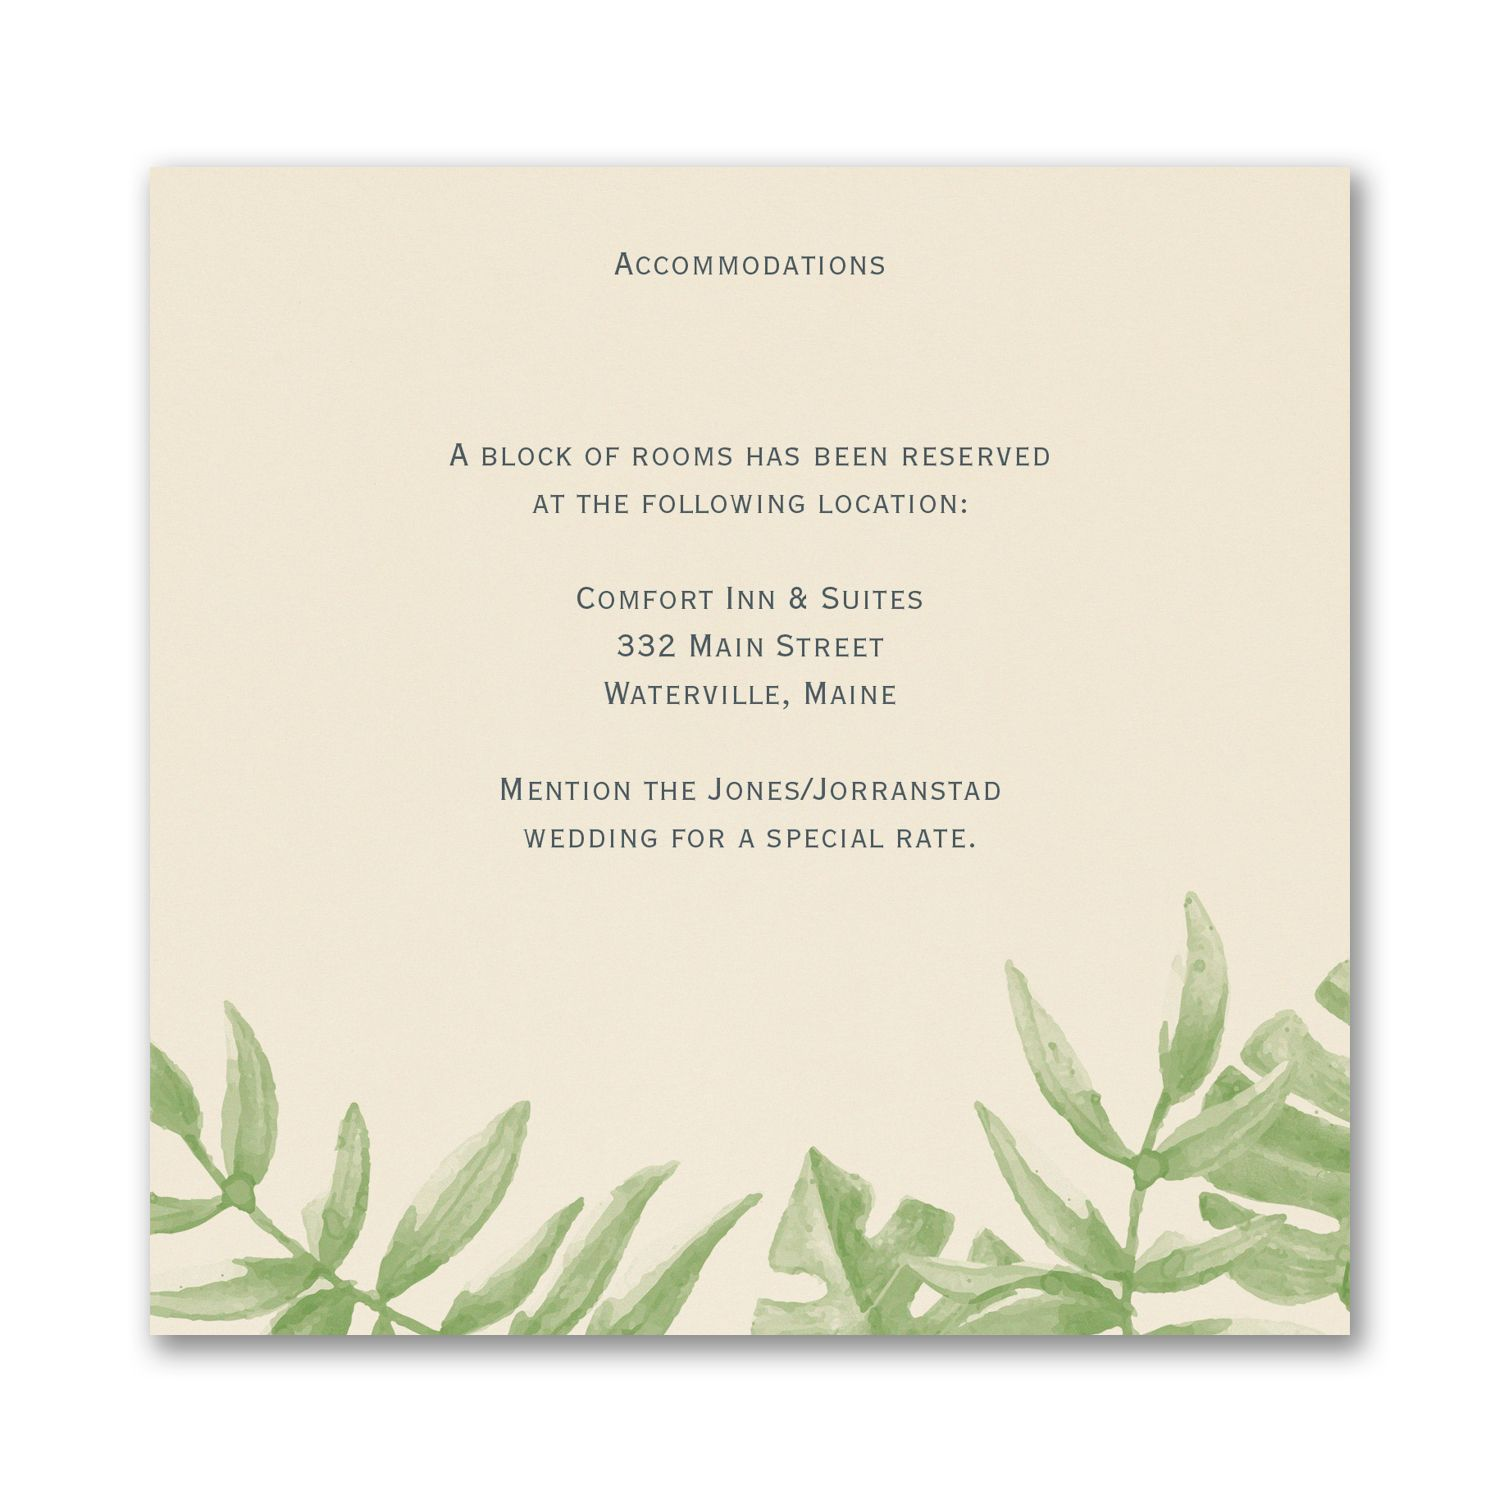 Jungle Love Accommodation Card Accommodations Card Personalized Invitations Cards